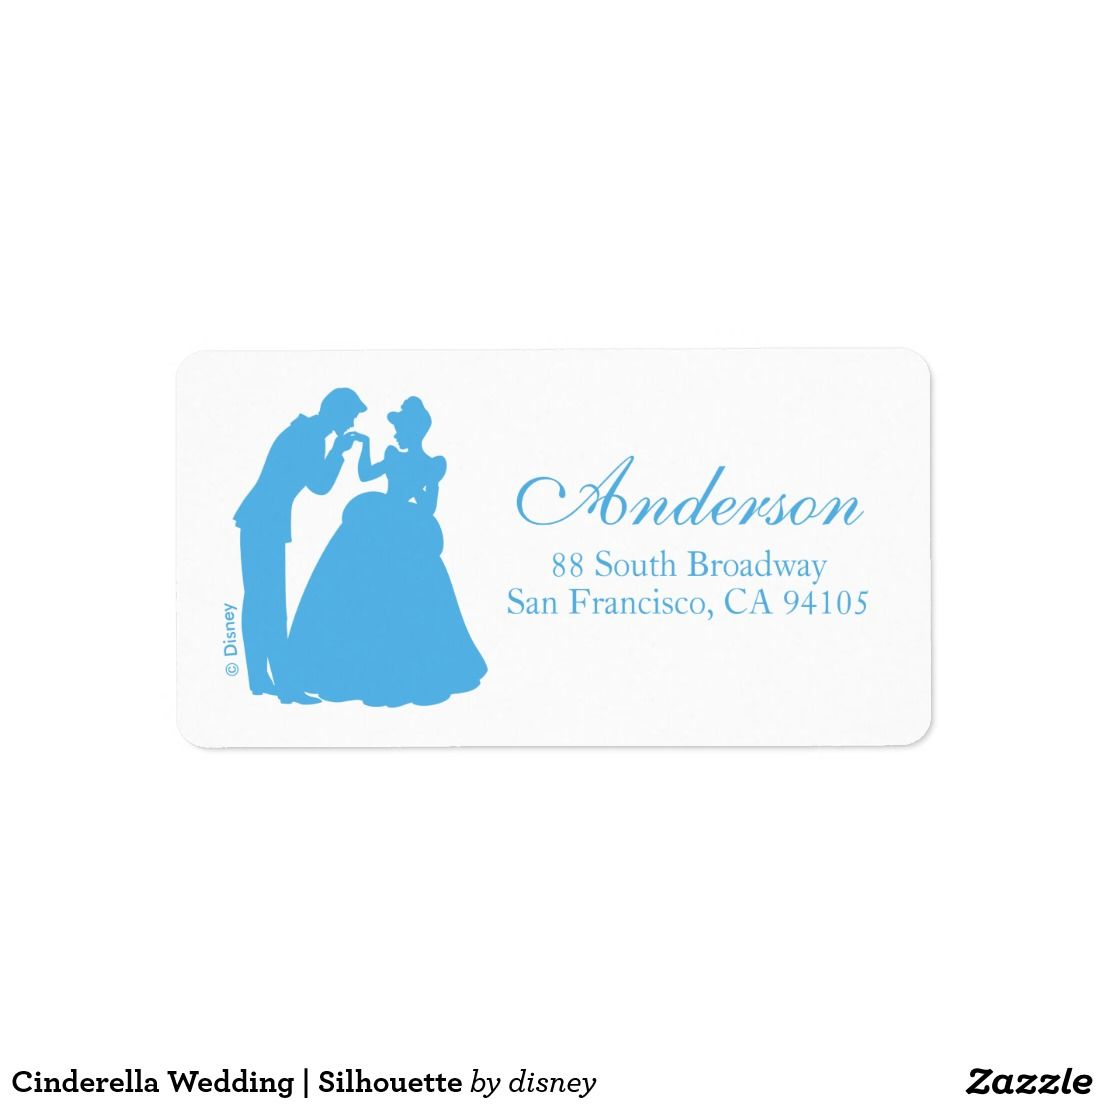 Cinderella Wedding Silhouette Label Wedding Silhouette